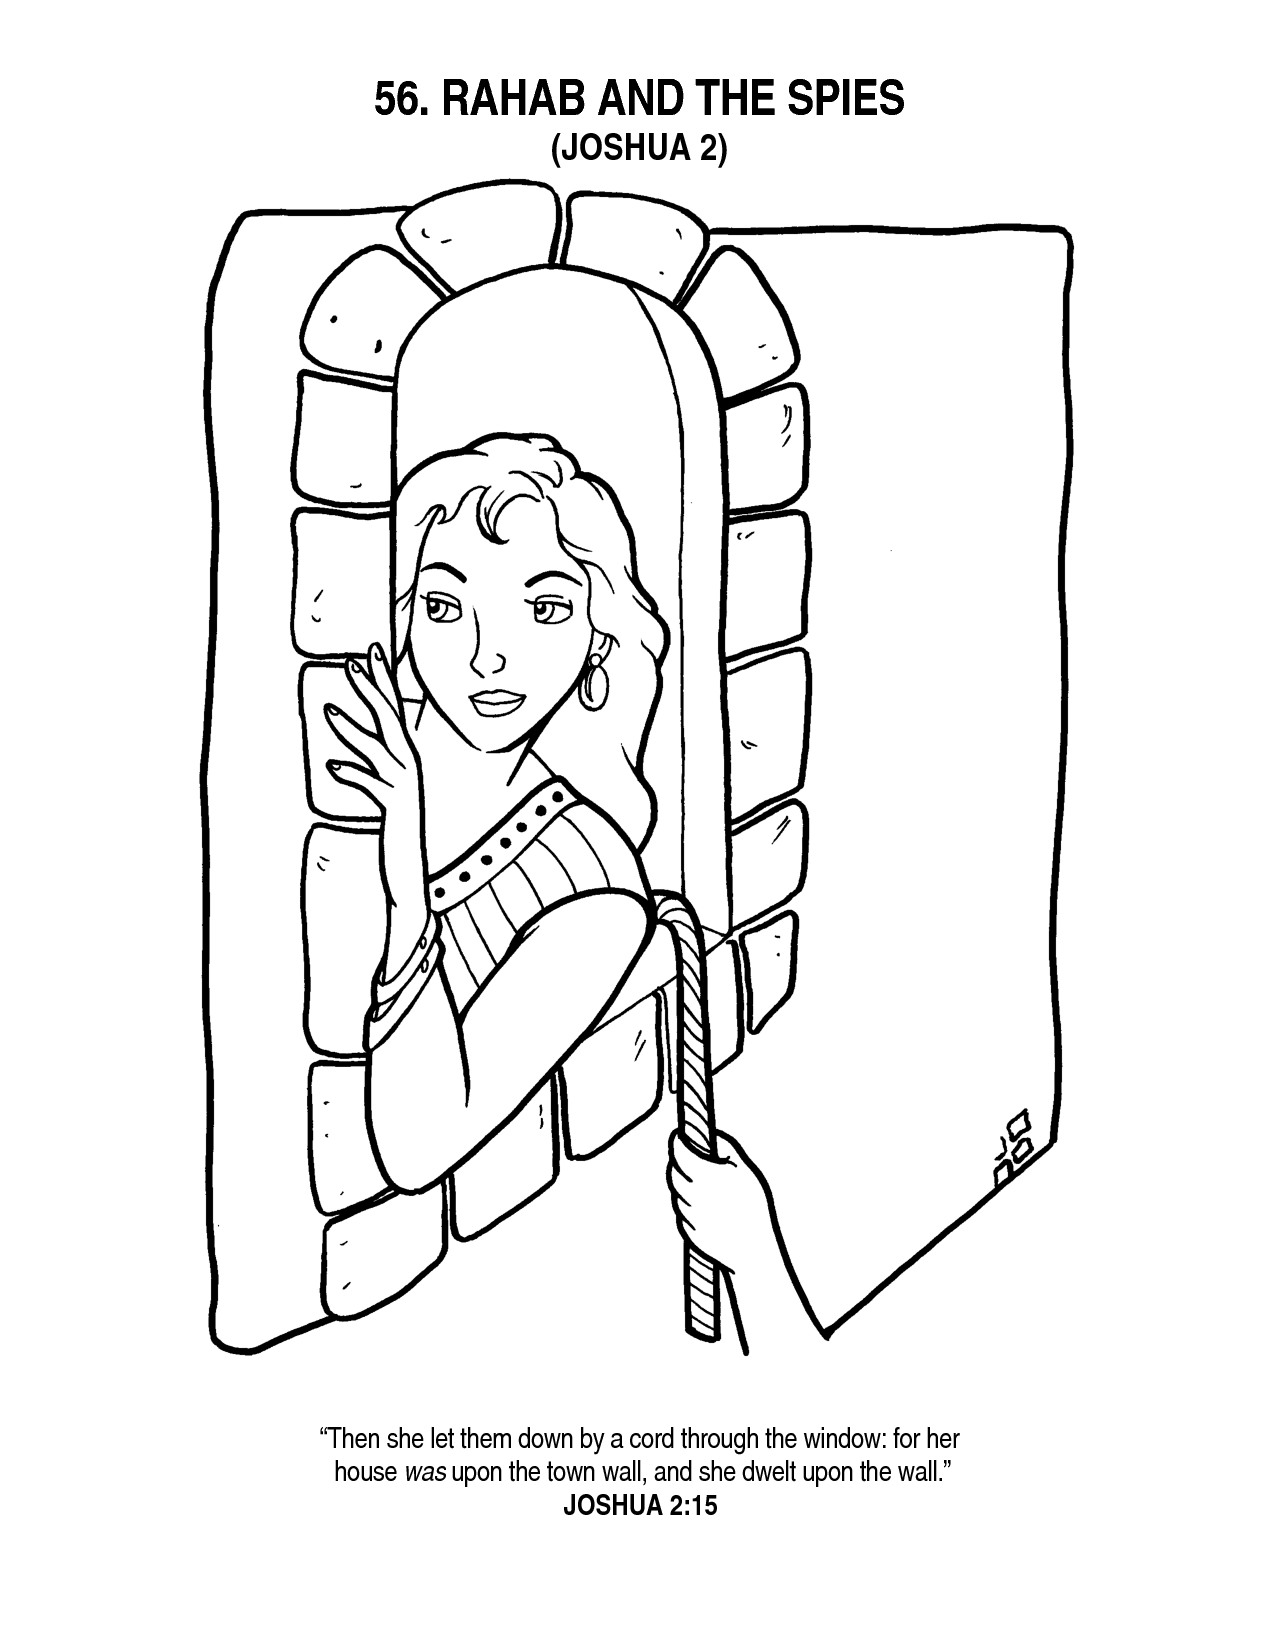 Adult Beauty Rahab Coloring Page Gallery Images best rahab and the spies coloring page az pages gallery images